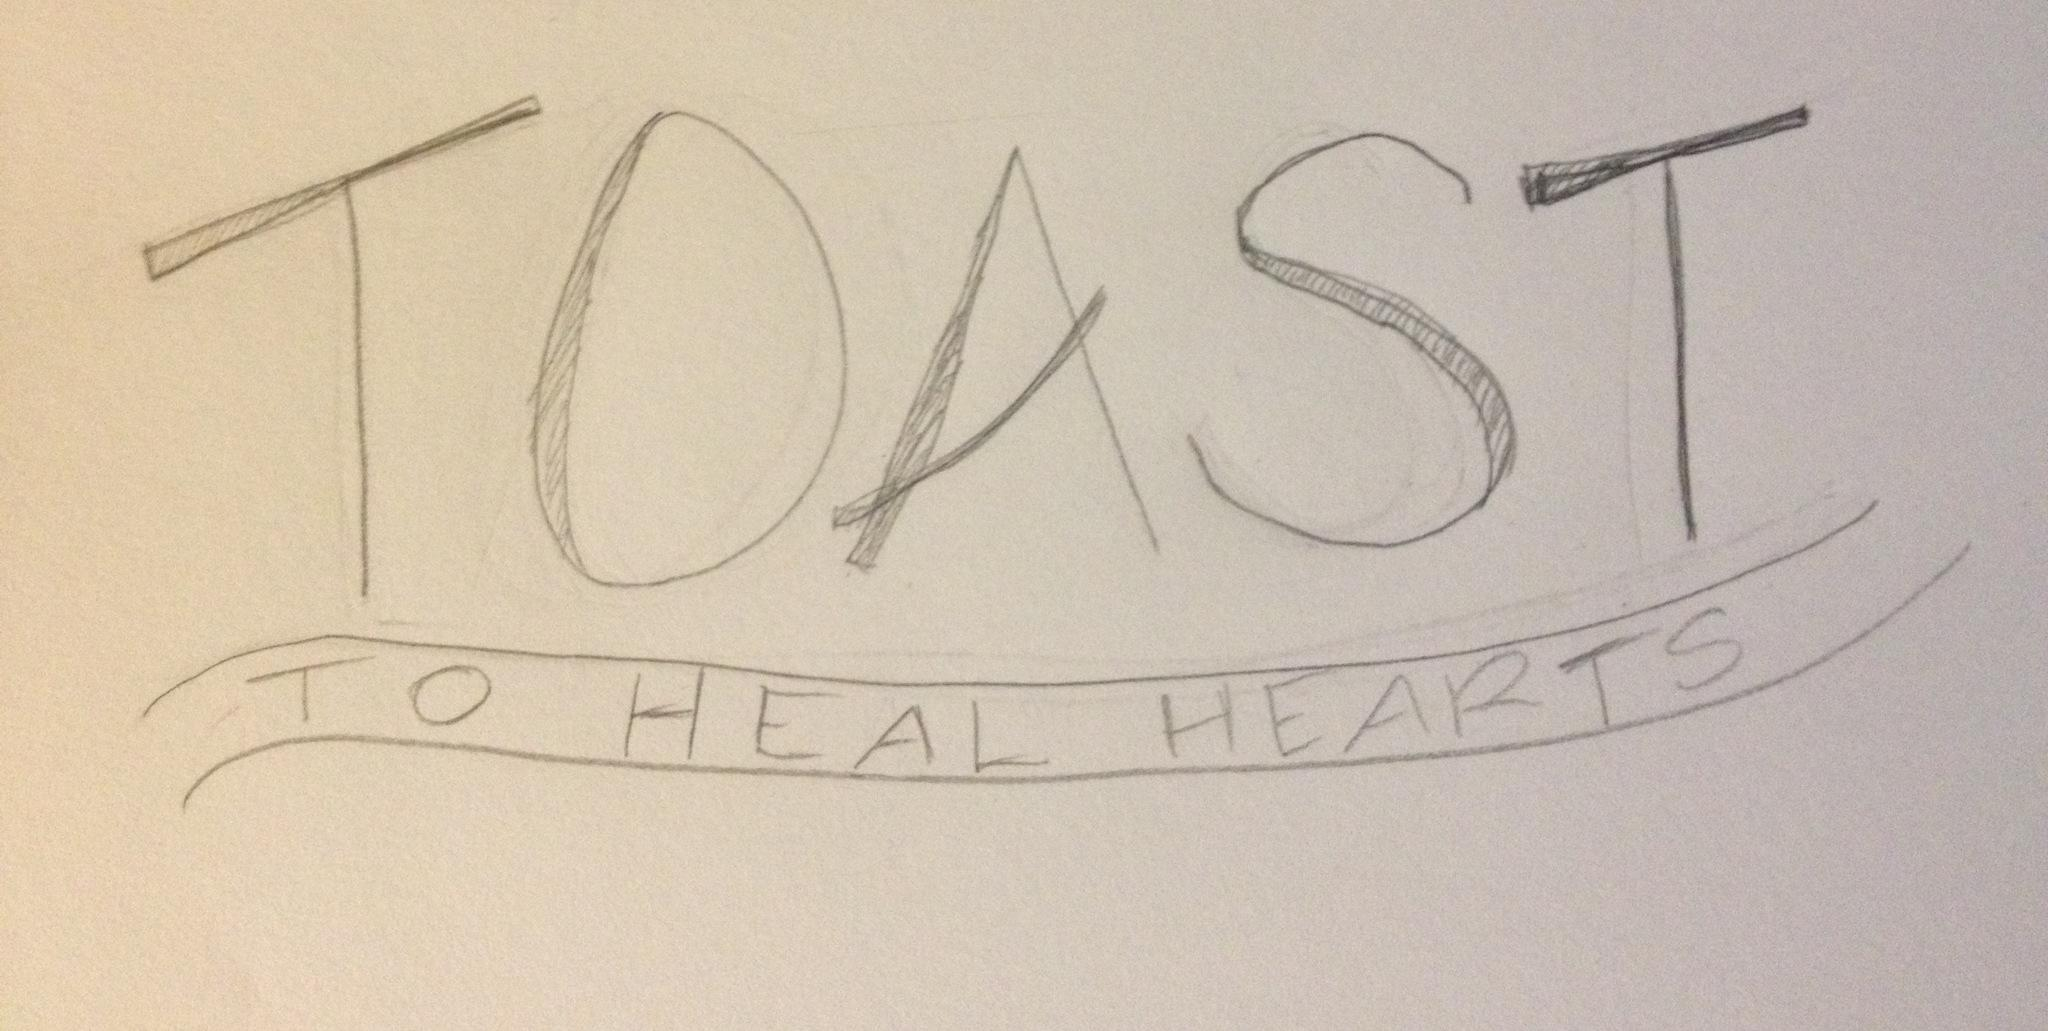 Toast to Heal Hearts - image 2 - student project